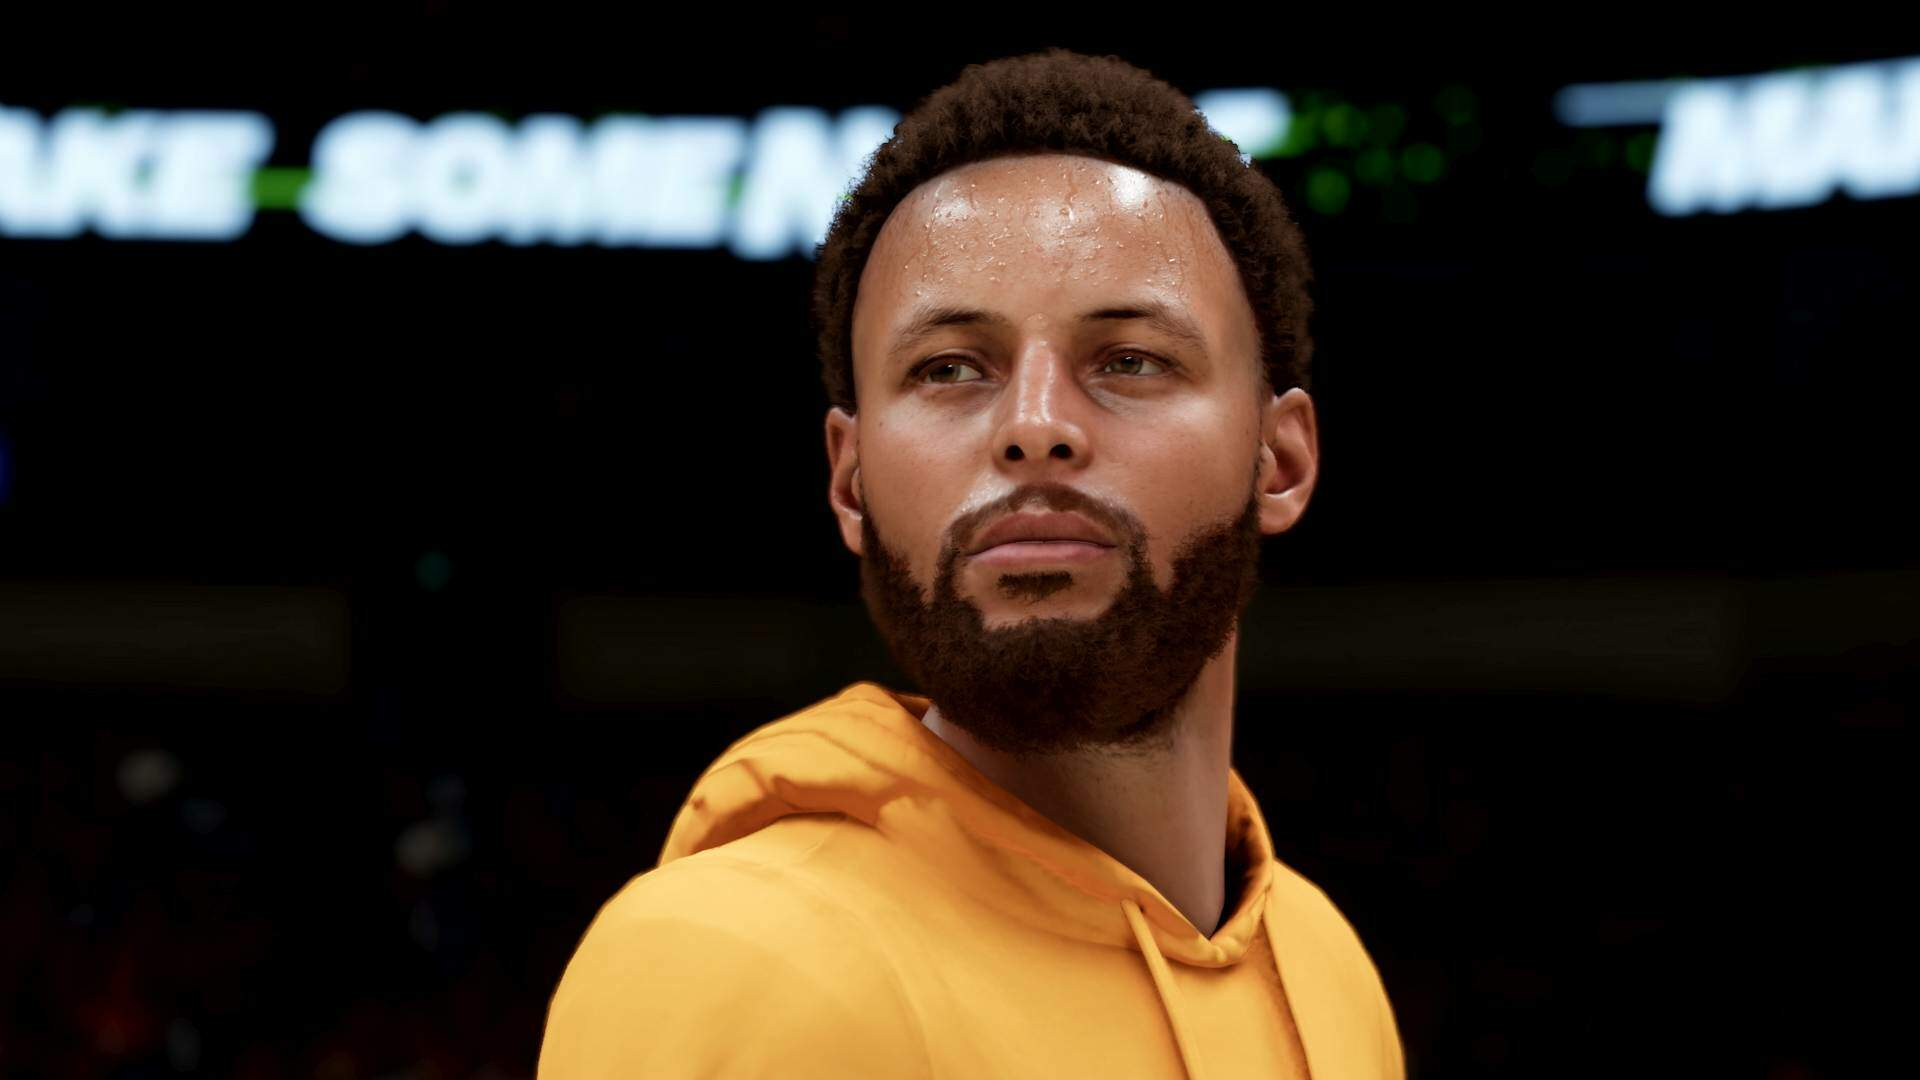 NBA 2K21 Draws Ire For Unskippable Loading Screen Ads